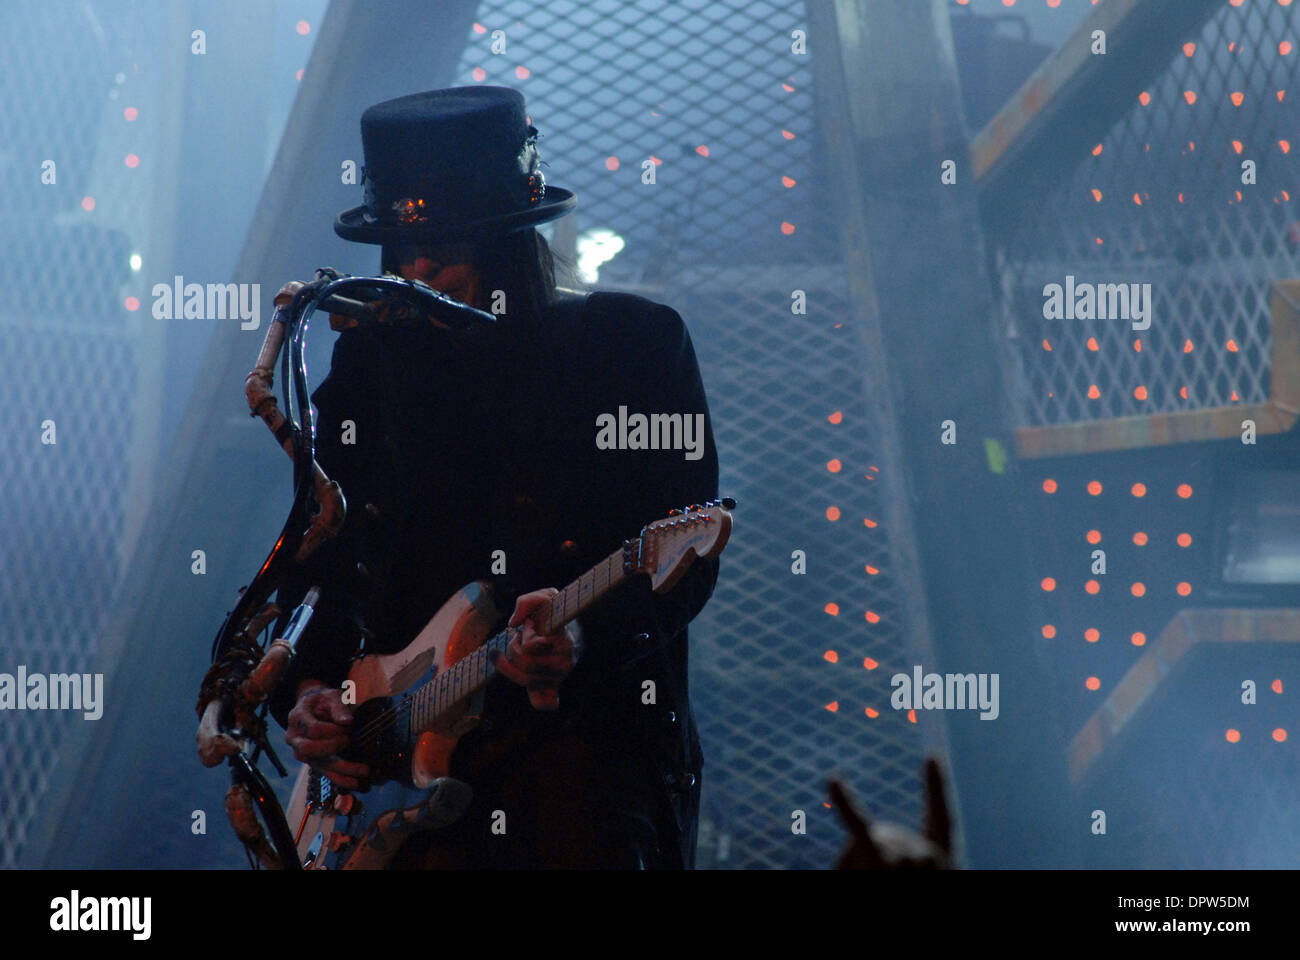 Mick Mars Of Motley Crue Stock Photos & Mick Mars Of Motley Crue ...